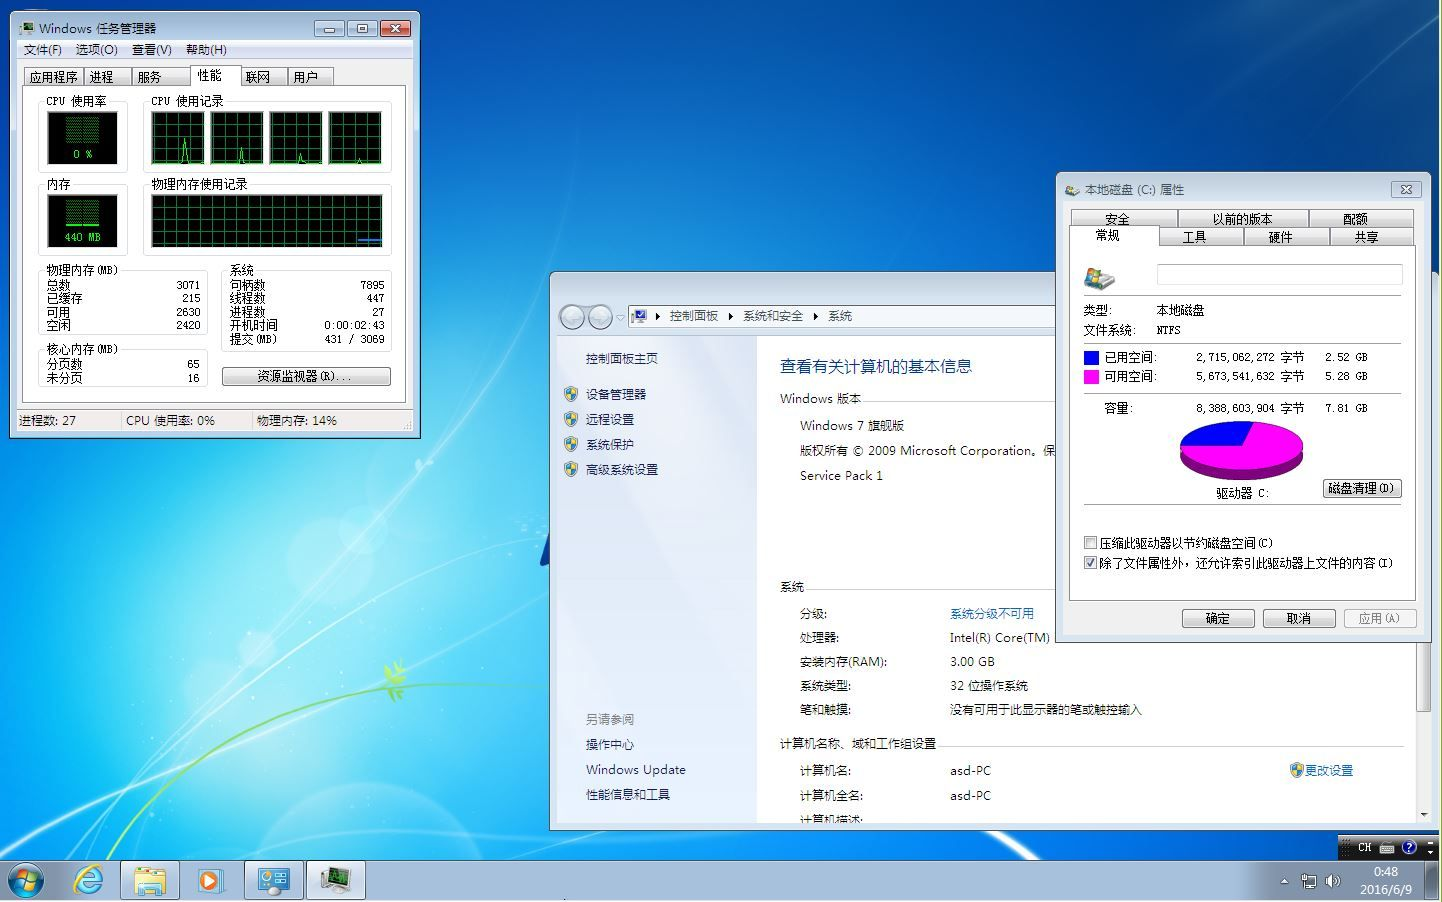 Windows 7 Ultimate SP1 7601.23403 RollUP 2016 x86-x64 zh-CN Micro - 04